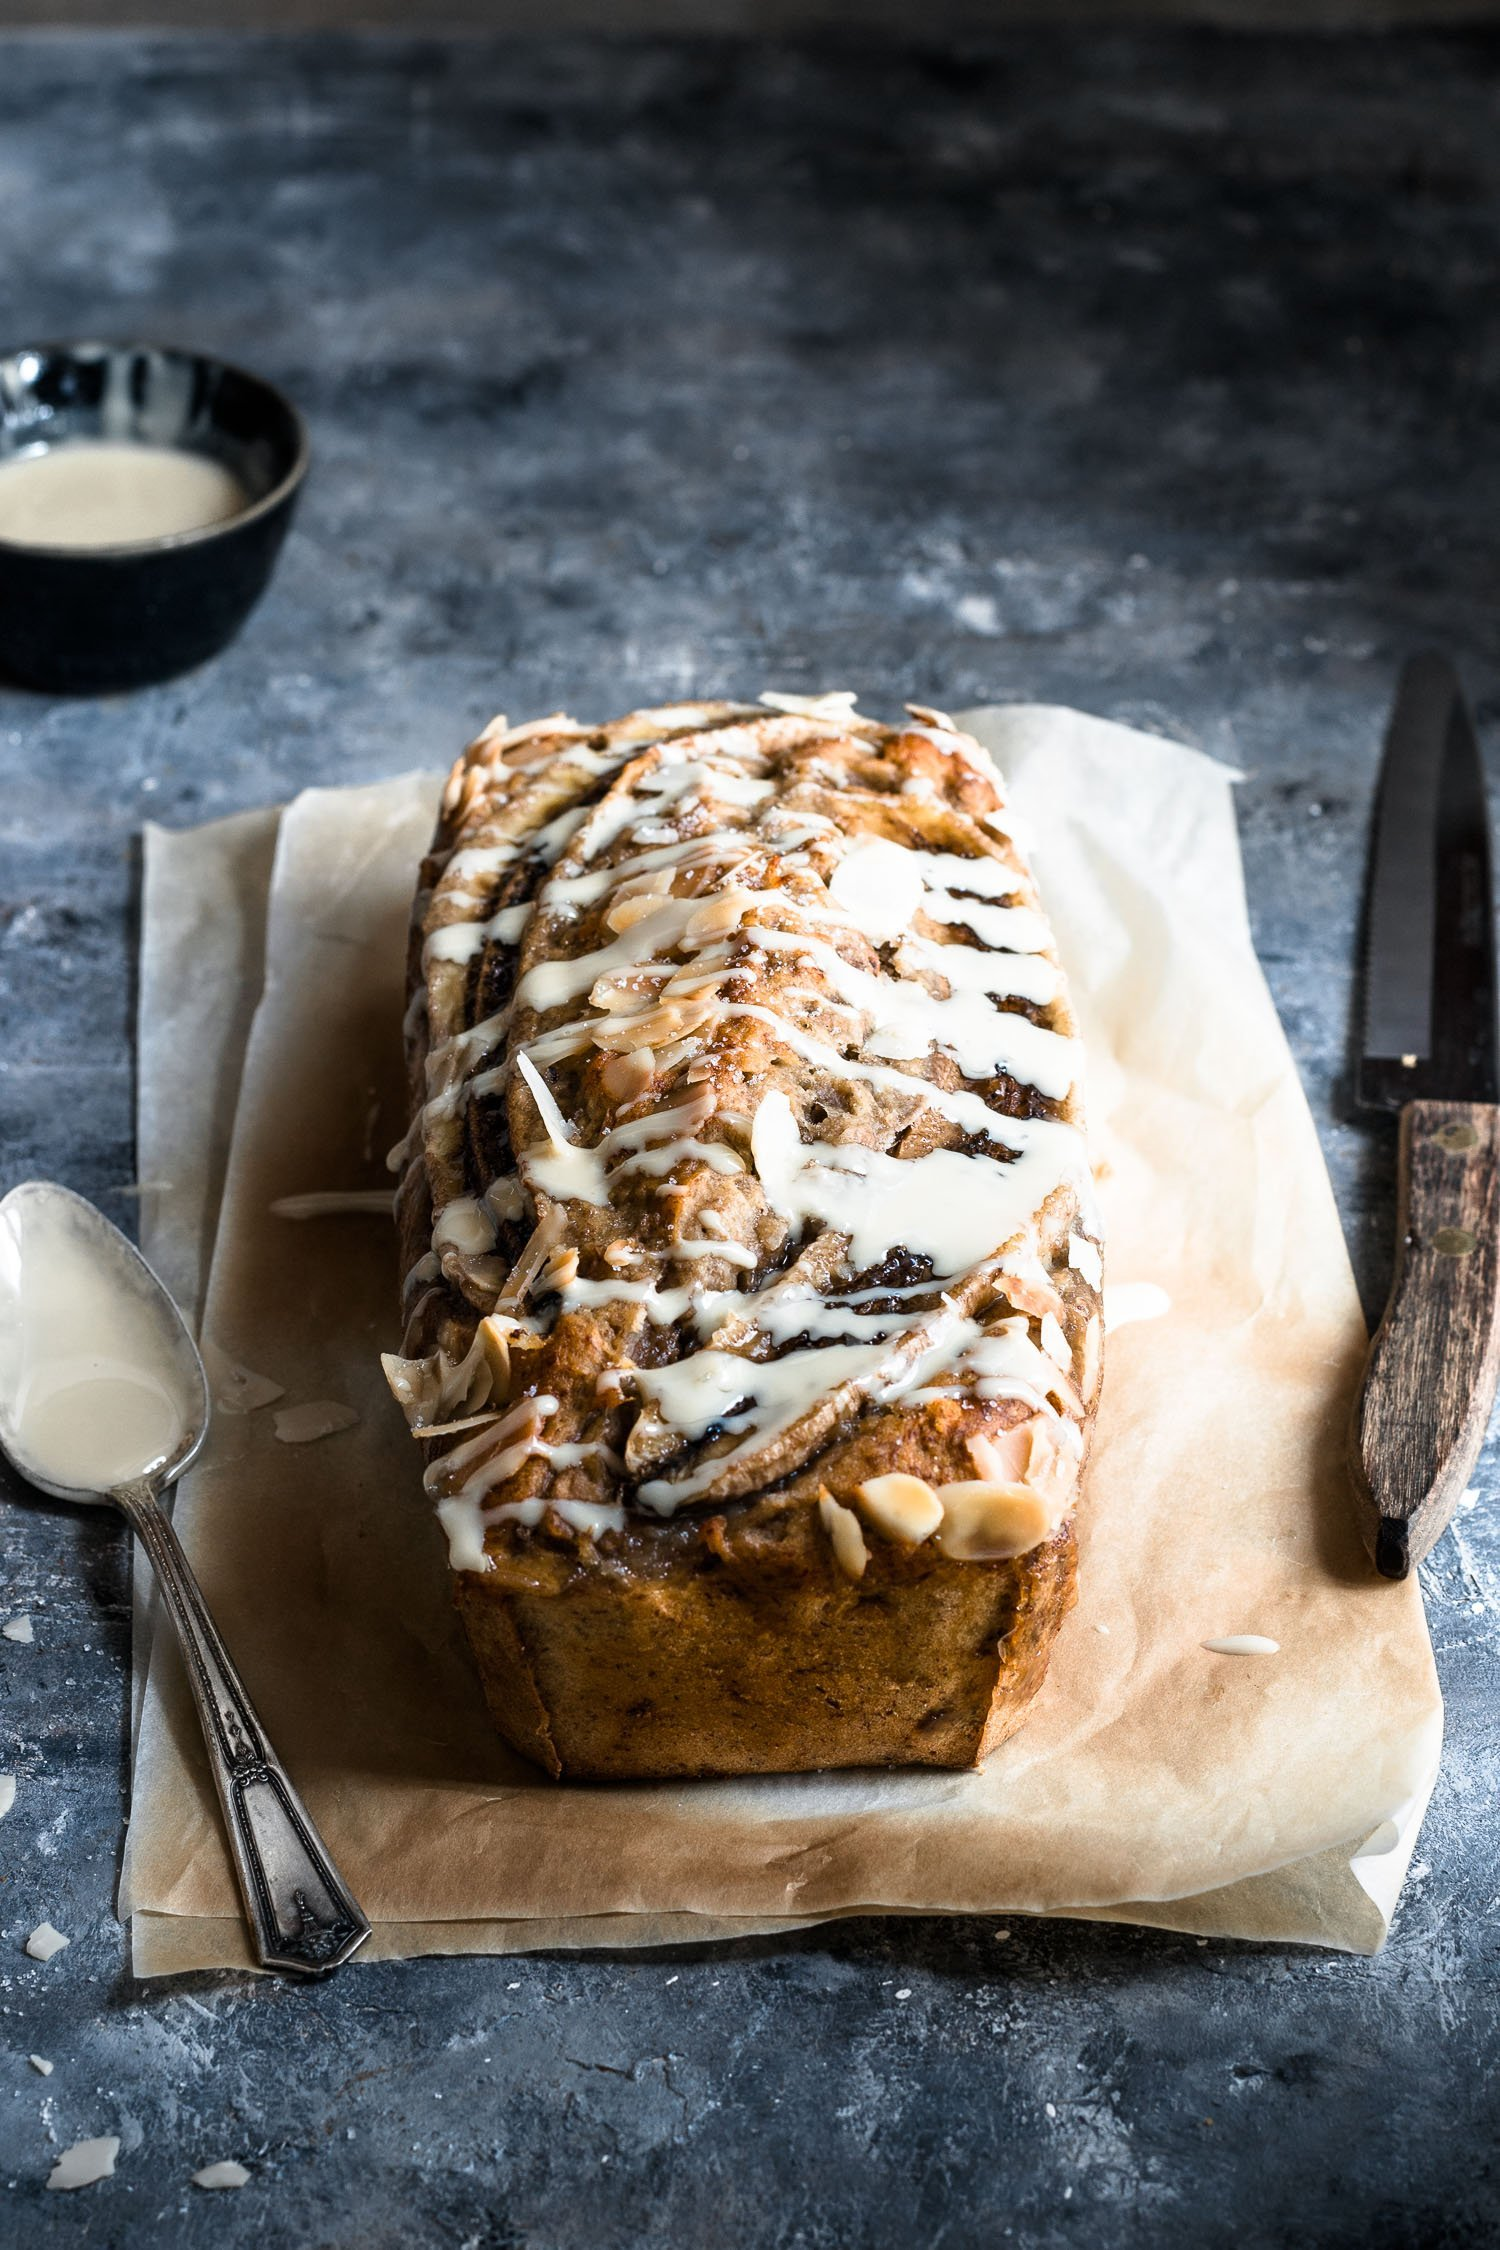 How to make an eggless banana bread with nuts